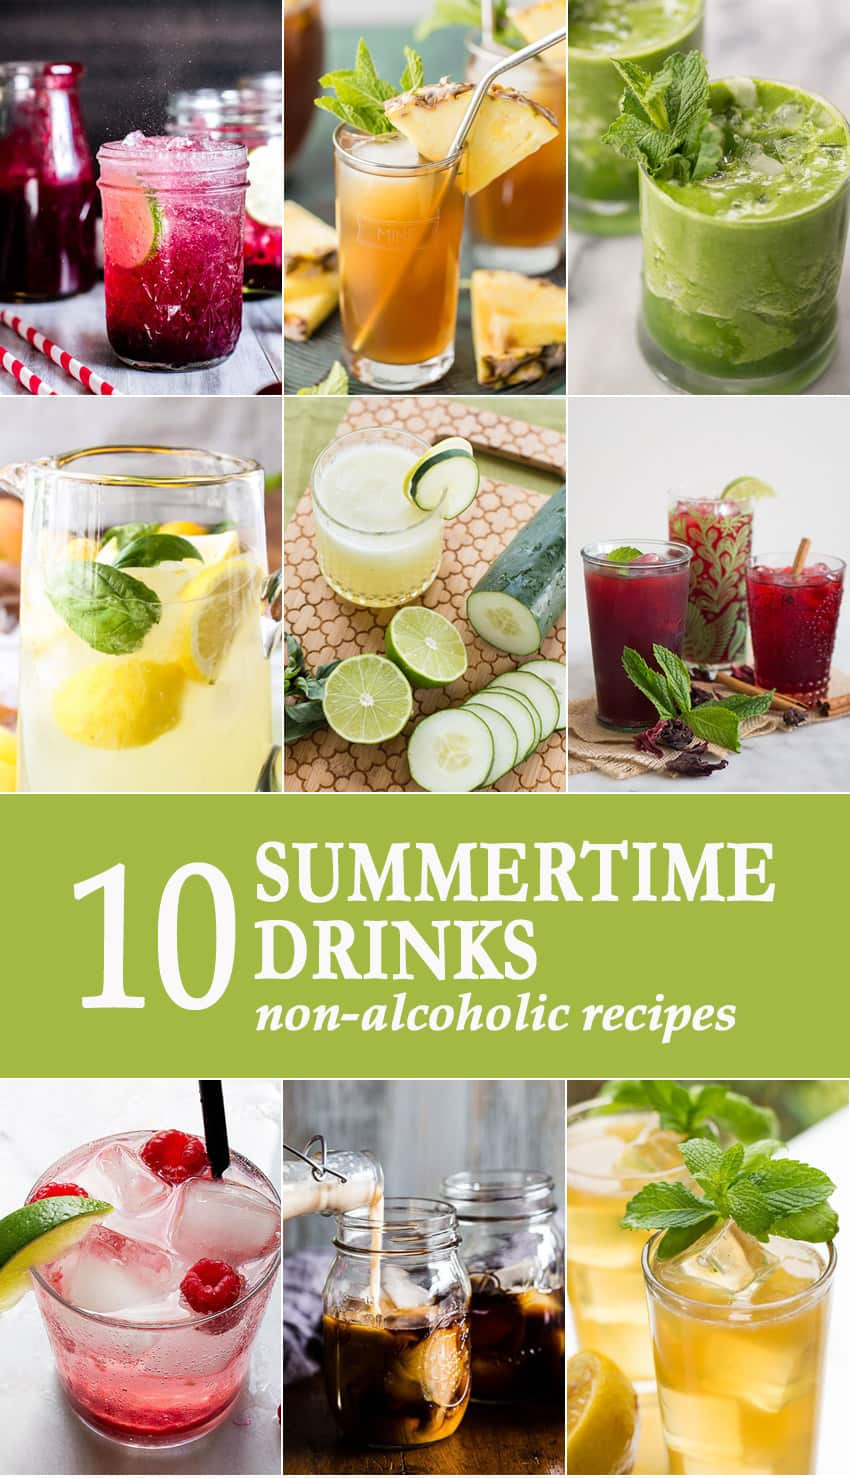 10 Summertime Drinks